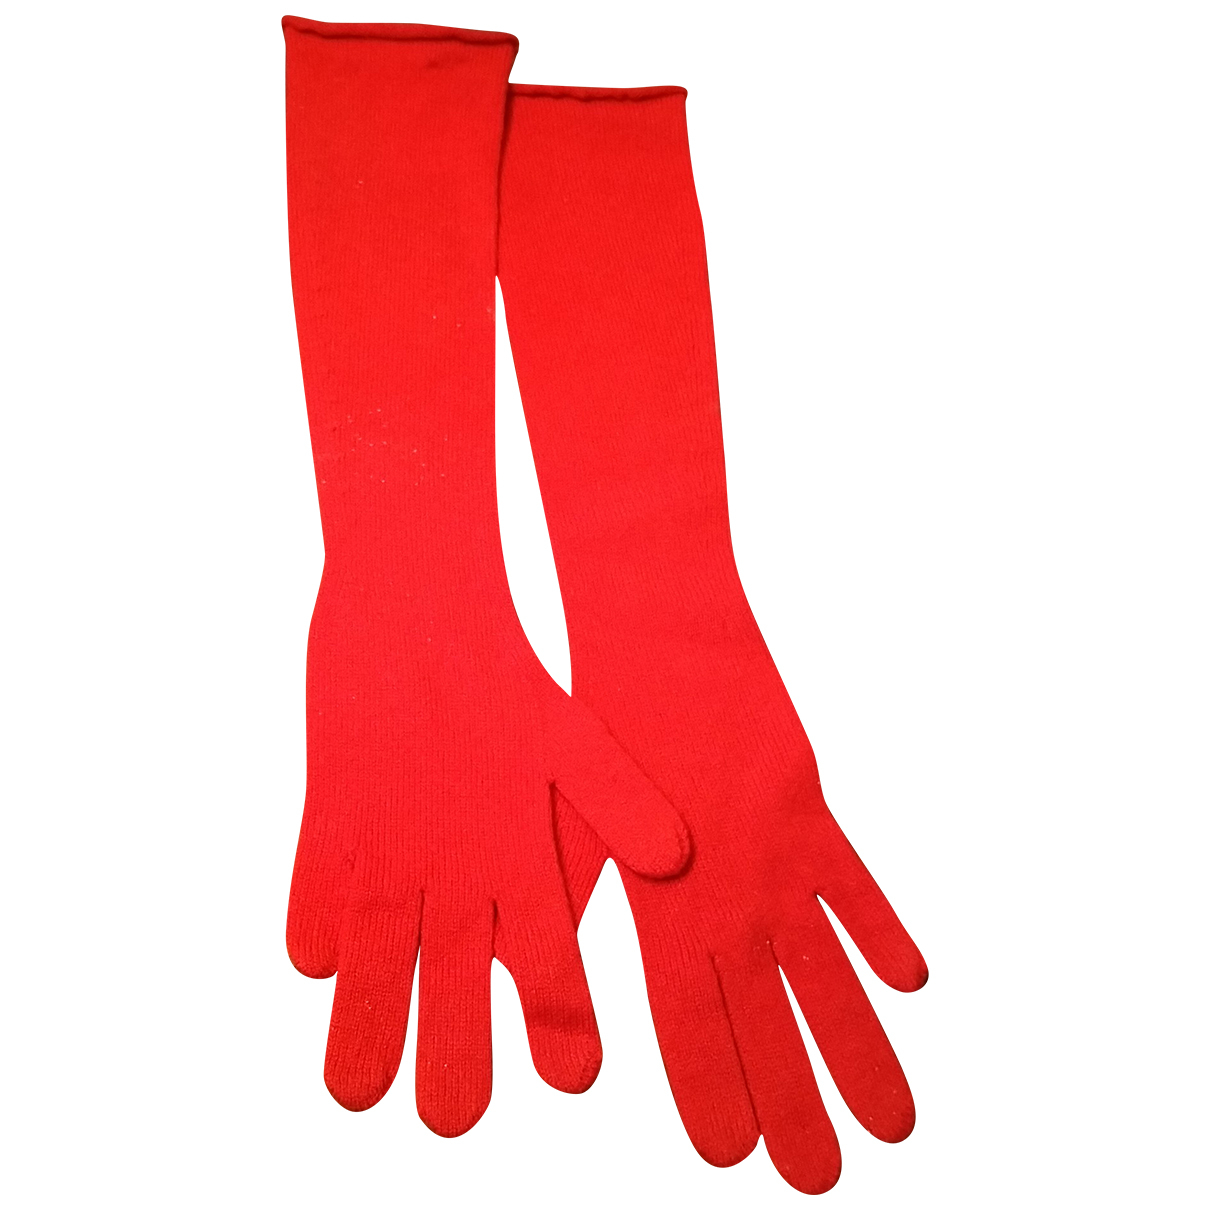 Valentino Garavani \N Red Cashmere Gloves for Women M International